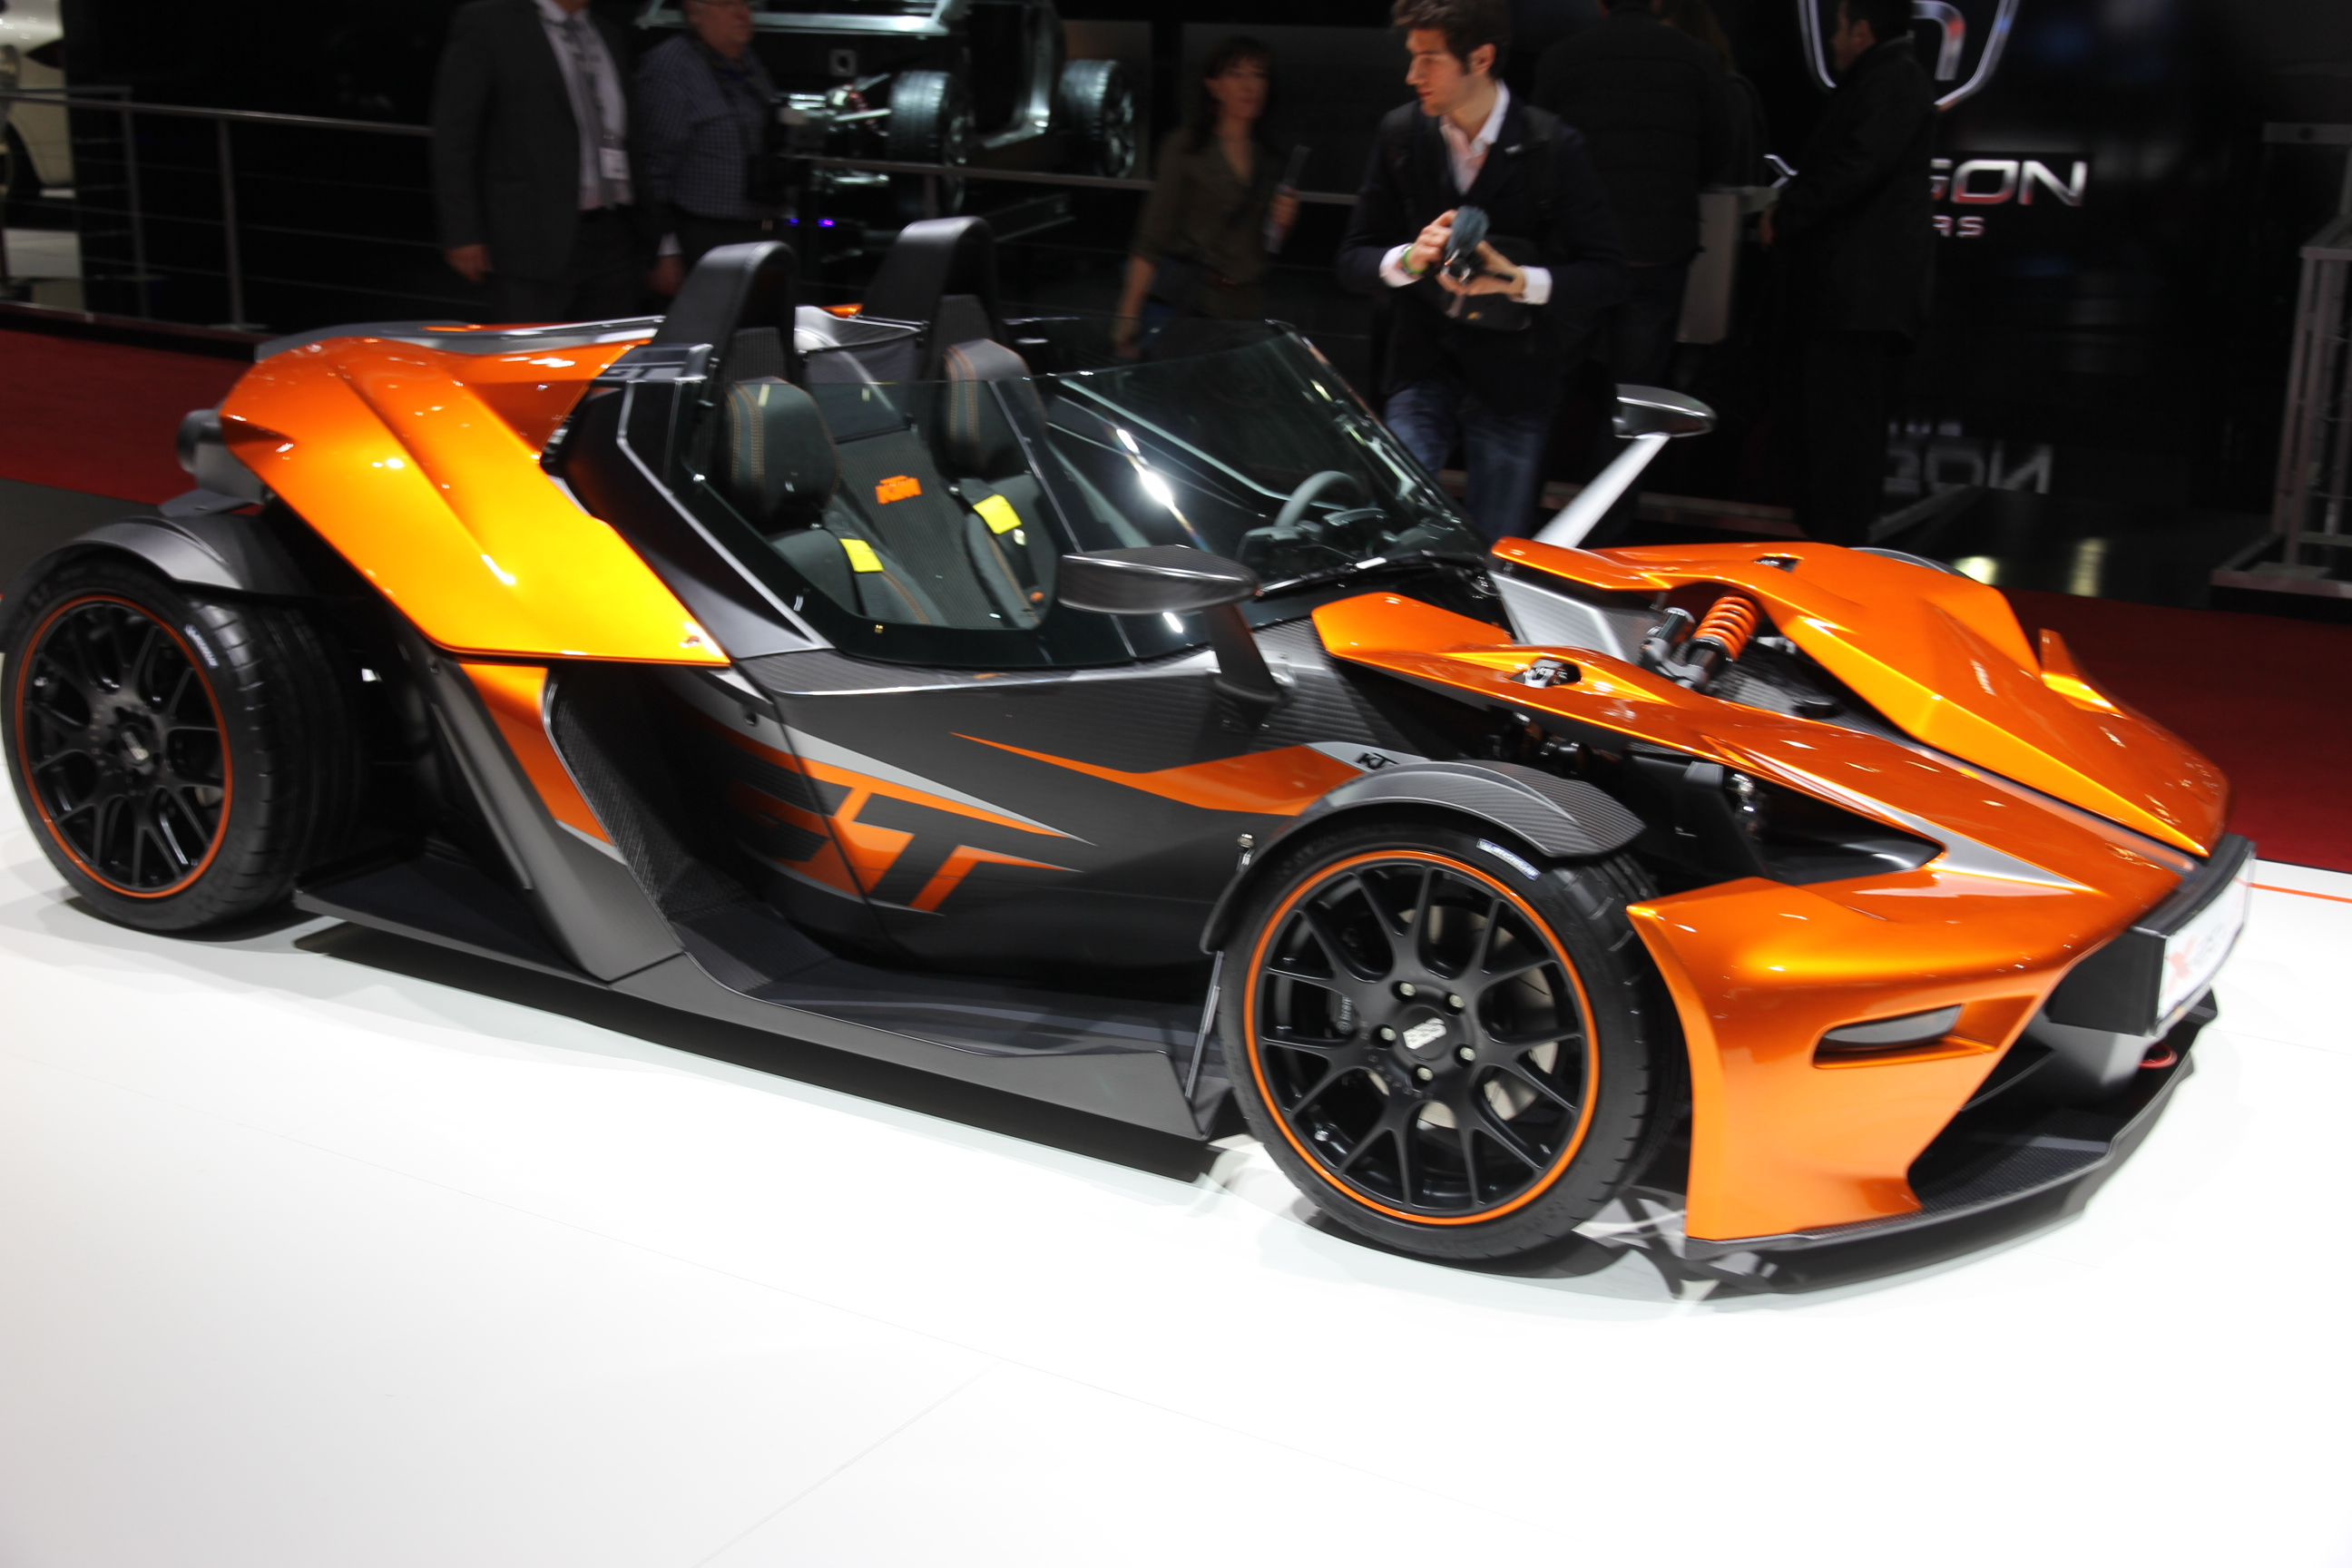 2013 ktm x bow gt. Black Bedroom Furniture Sets. Home Design Ideas